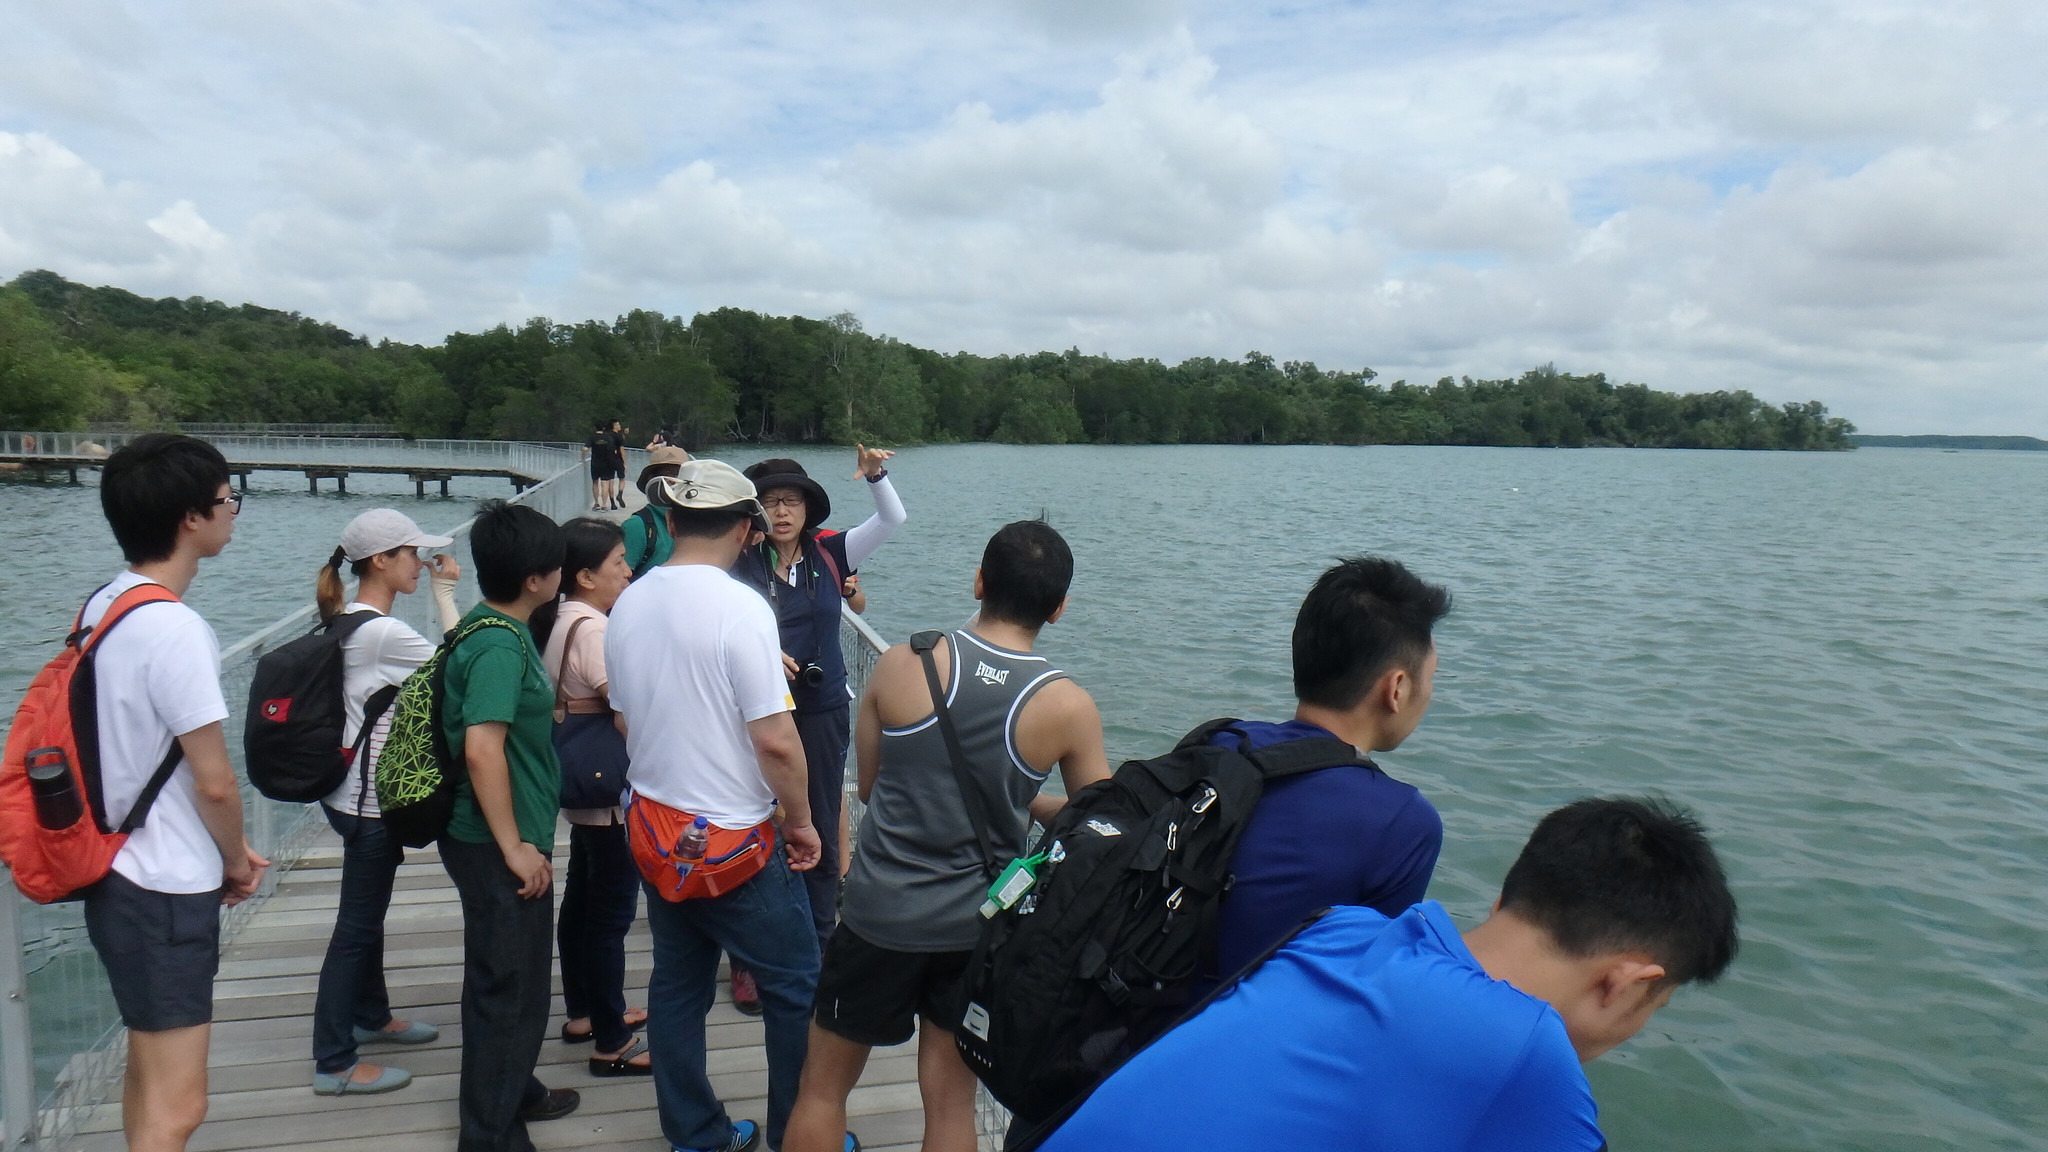 Monthly free guided walk at Chek Jawa with the Naked Hermit Crabs